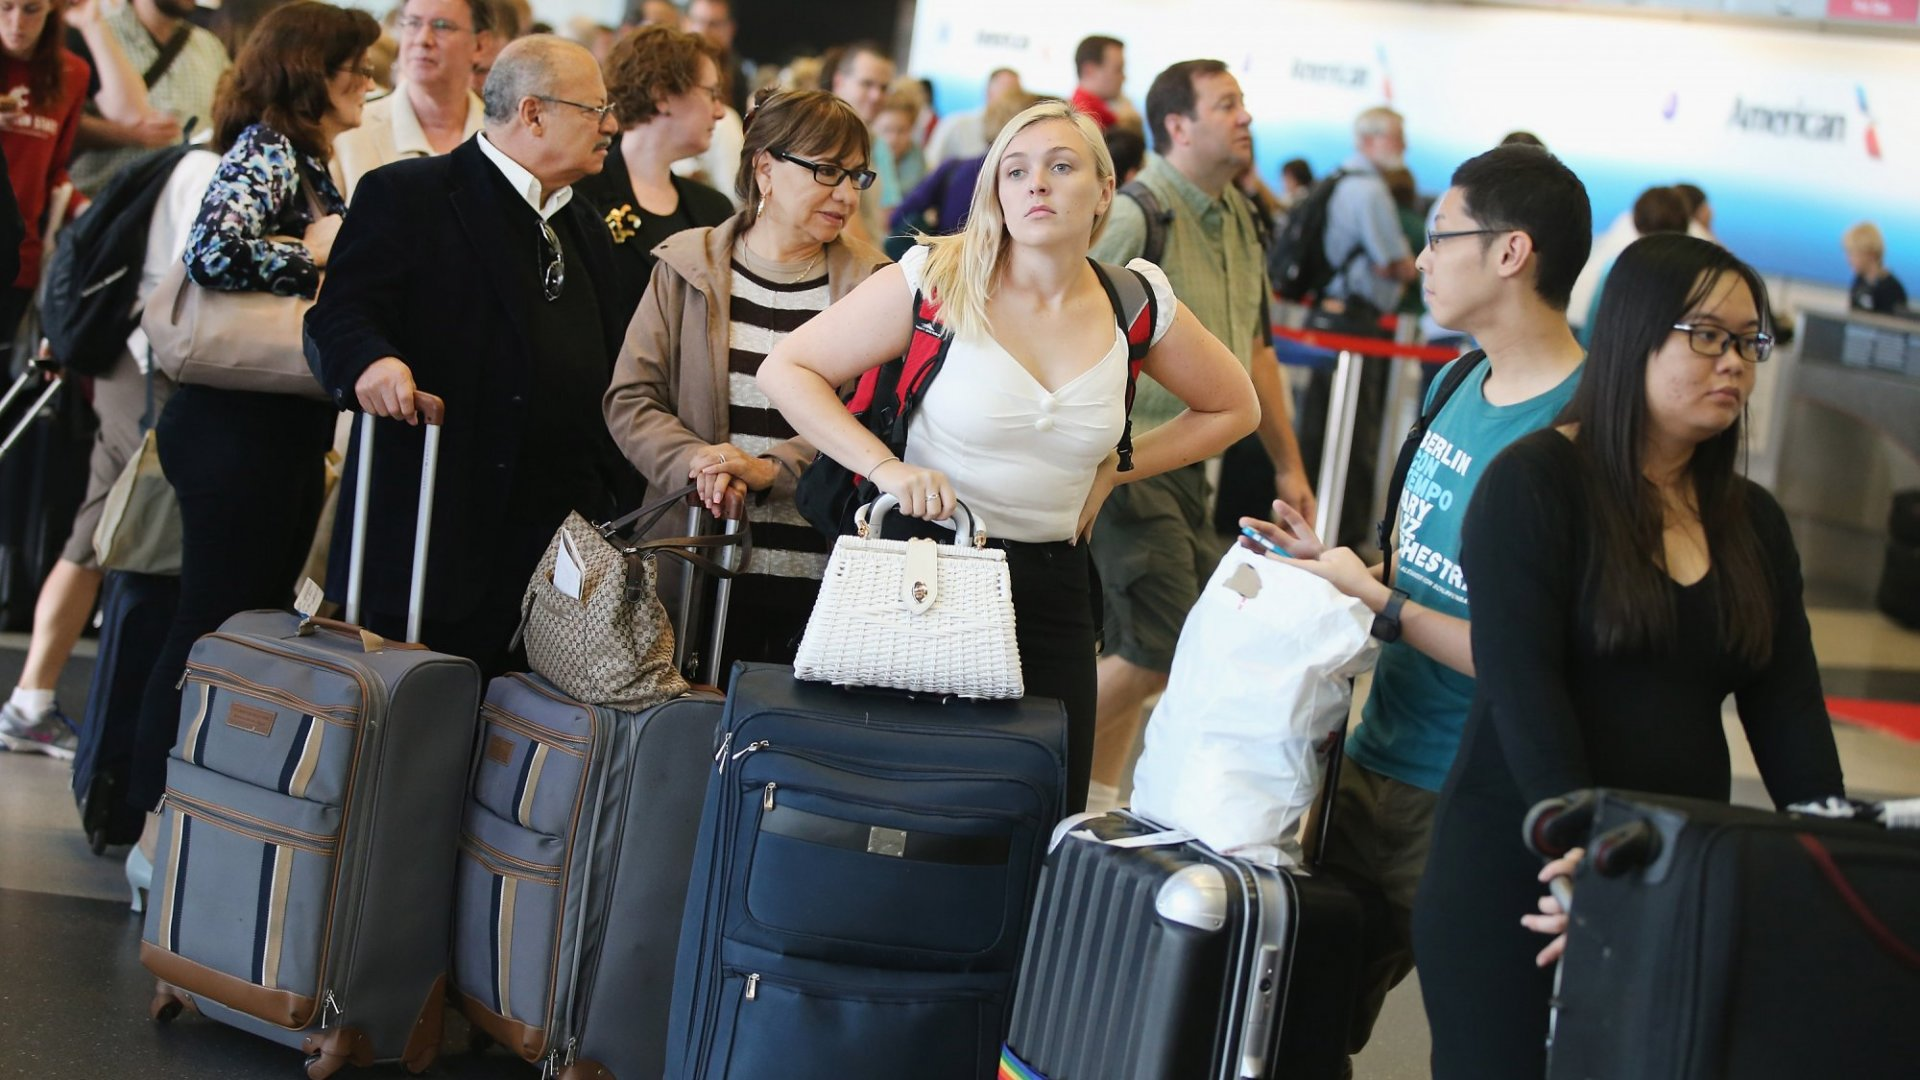 Did You 'Use the Lavatory?' 'Carry a Smartphone?' Have a 'Strong Body Odor?' The Federal Air Marshals Want to Know